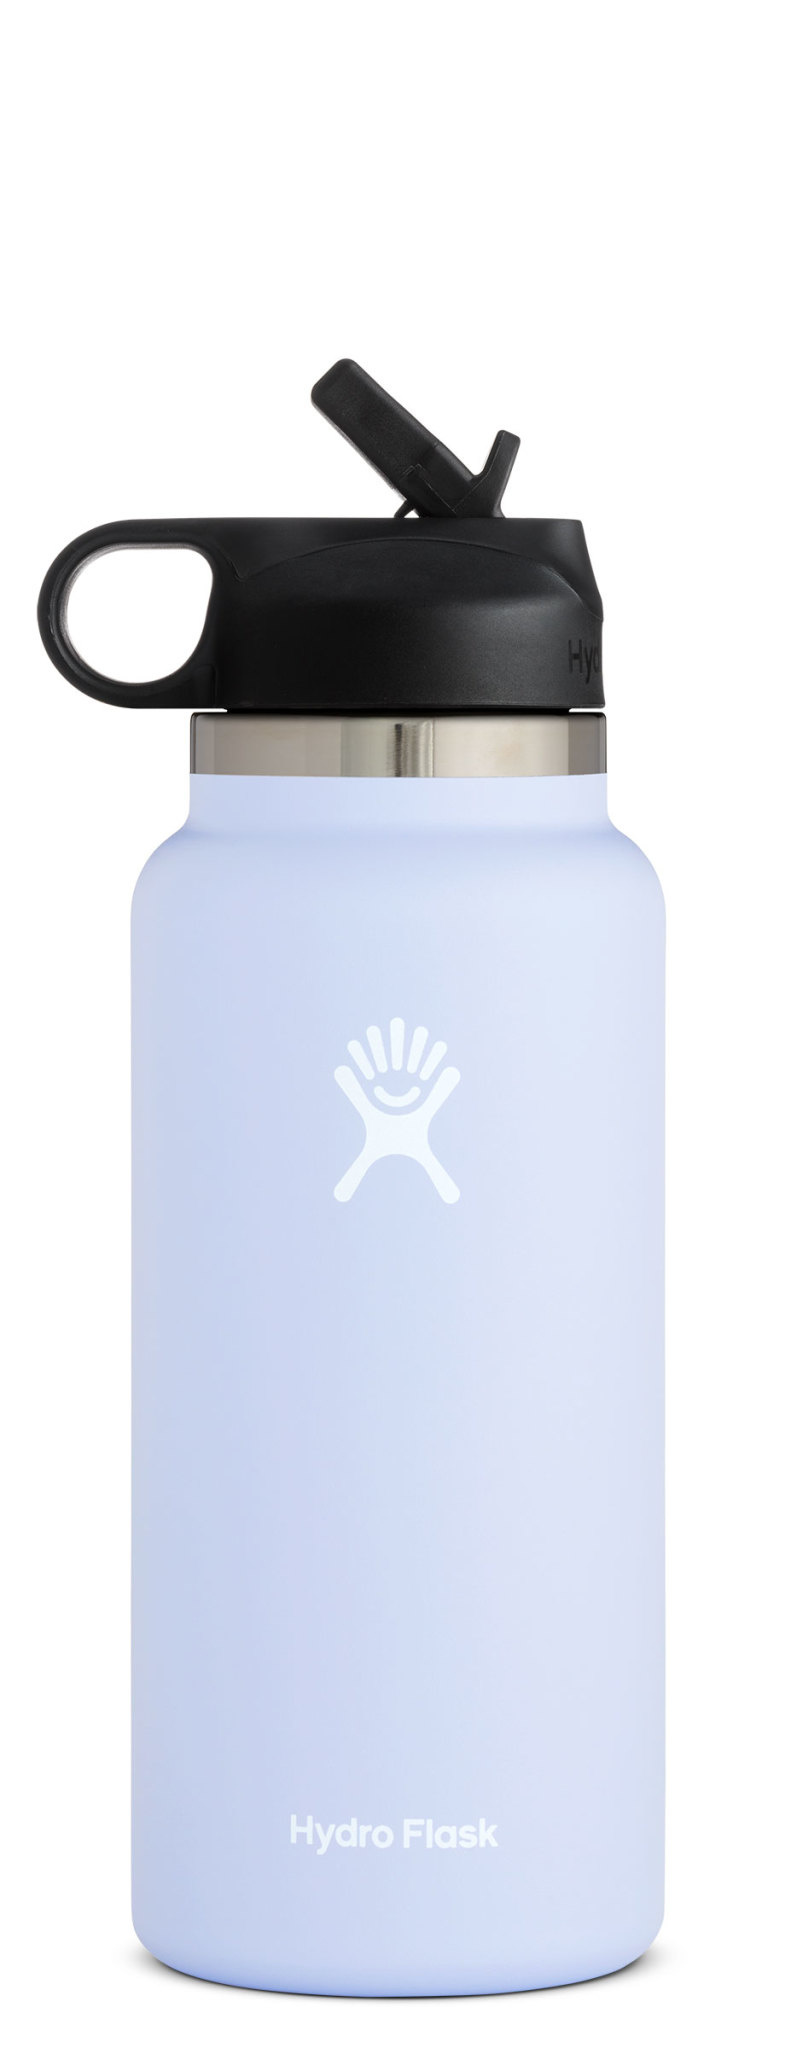 Hydro Flask 32oz Wide Mouth with Straw Lid-1